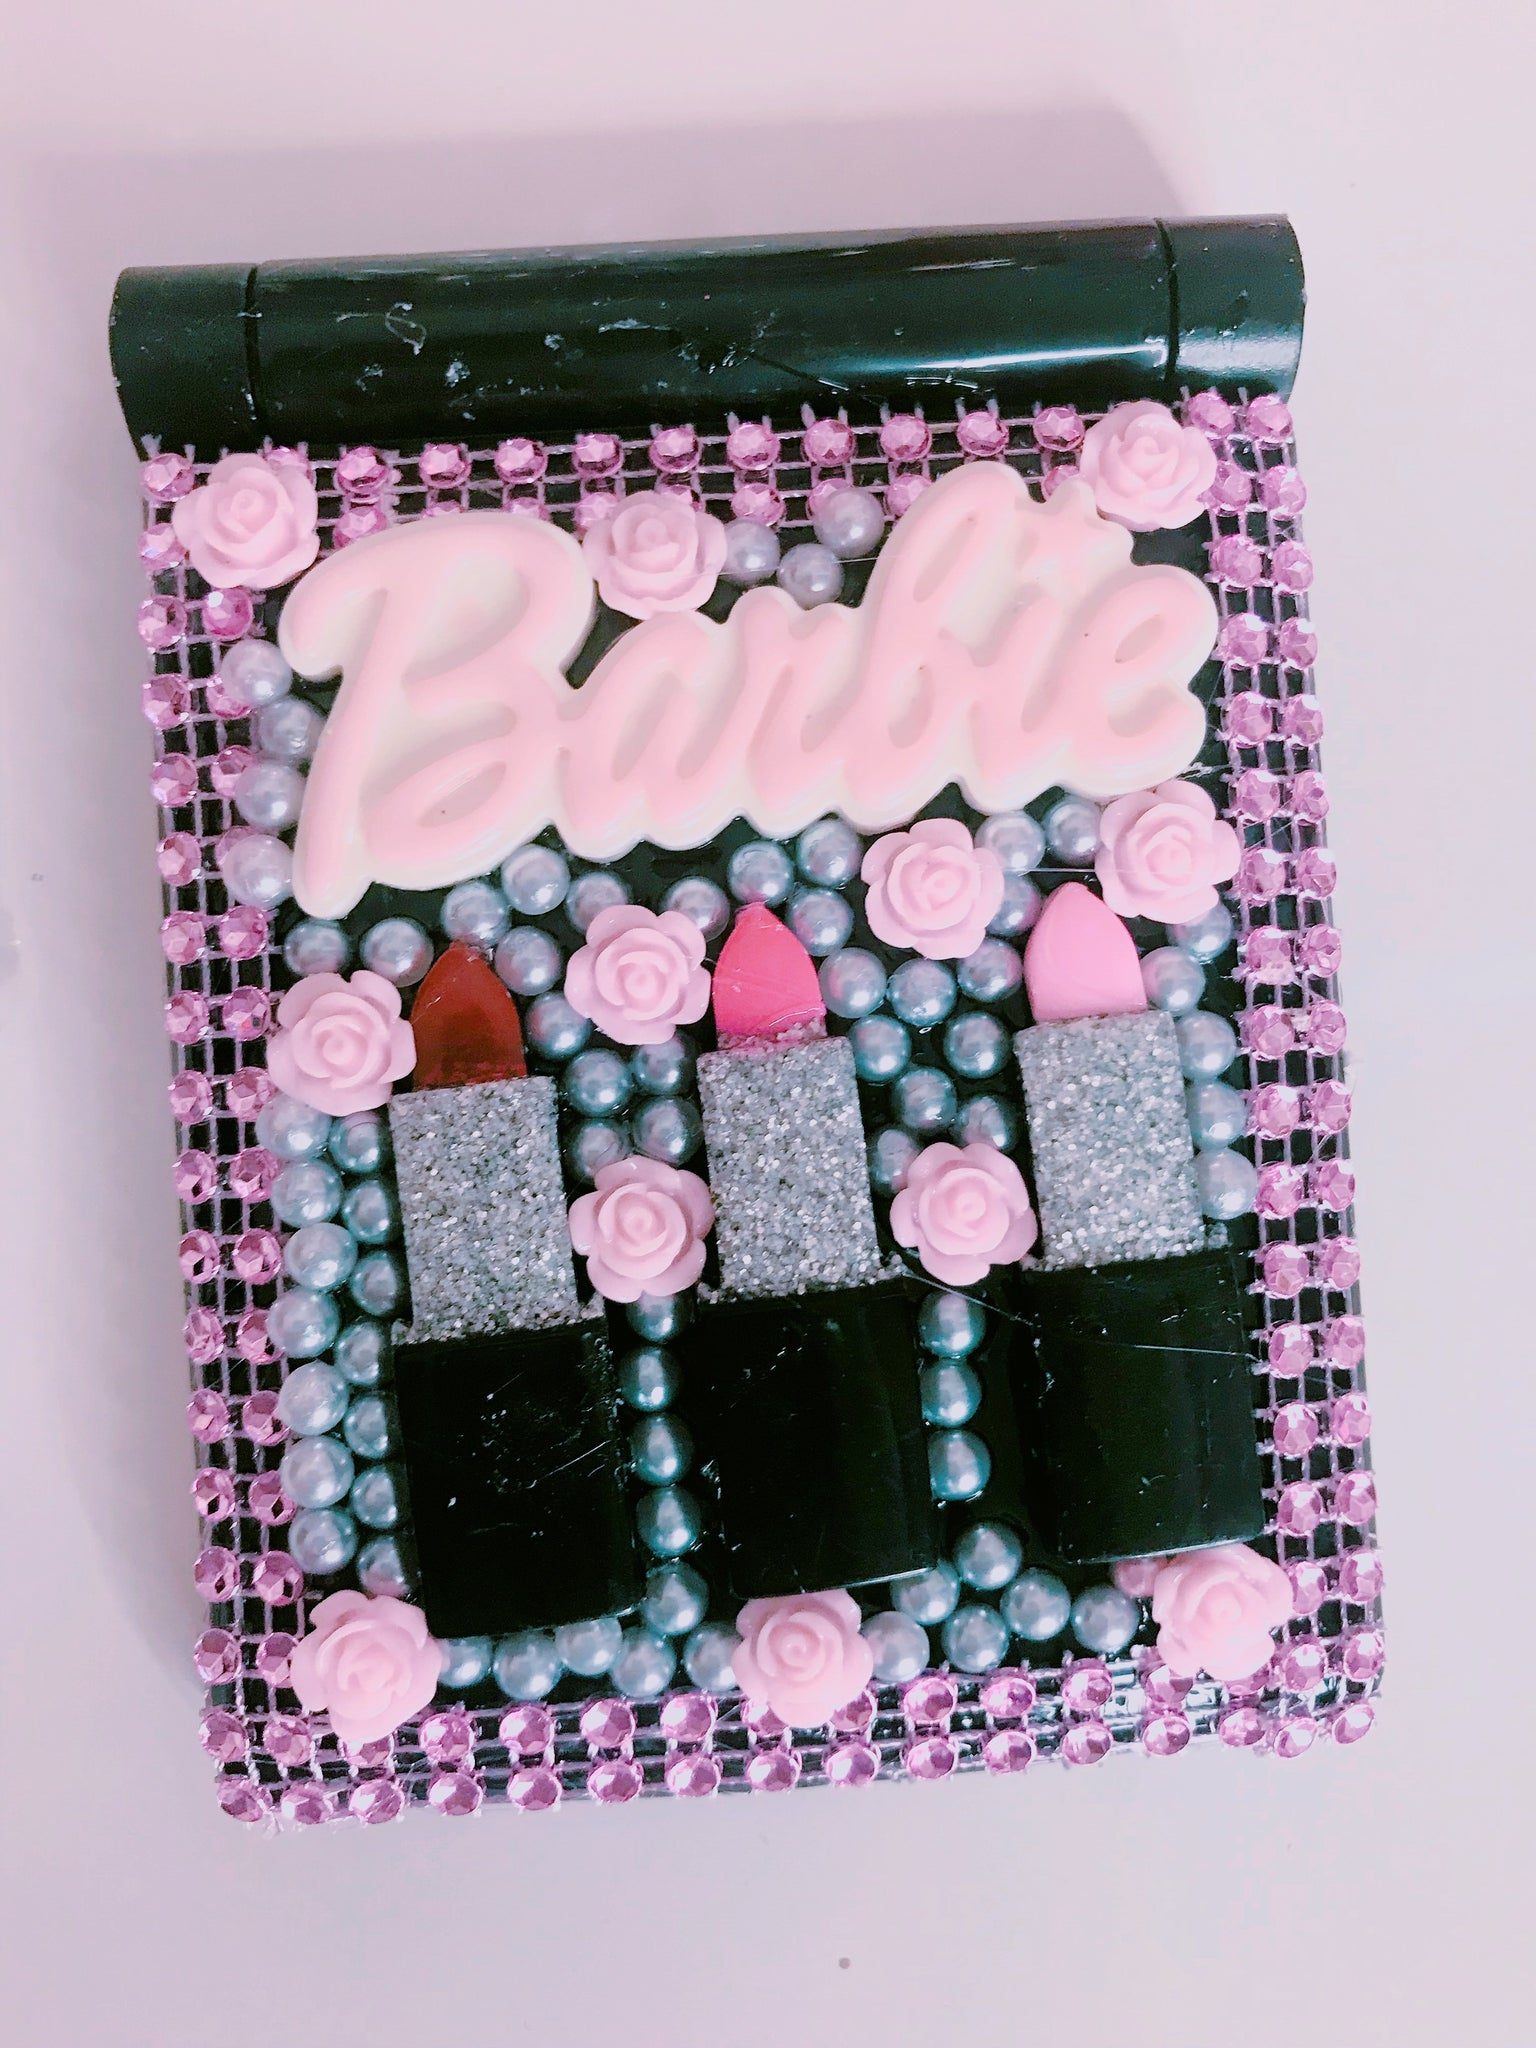 Lipstick Barbie compact mirror with lights - Classy Pink Boutique